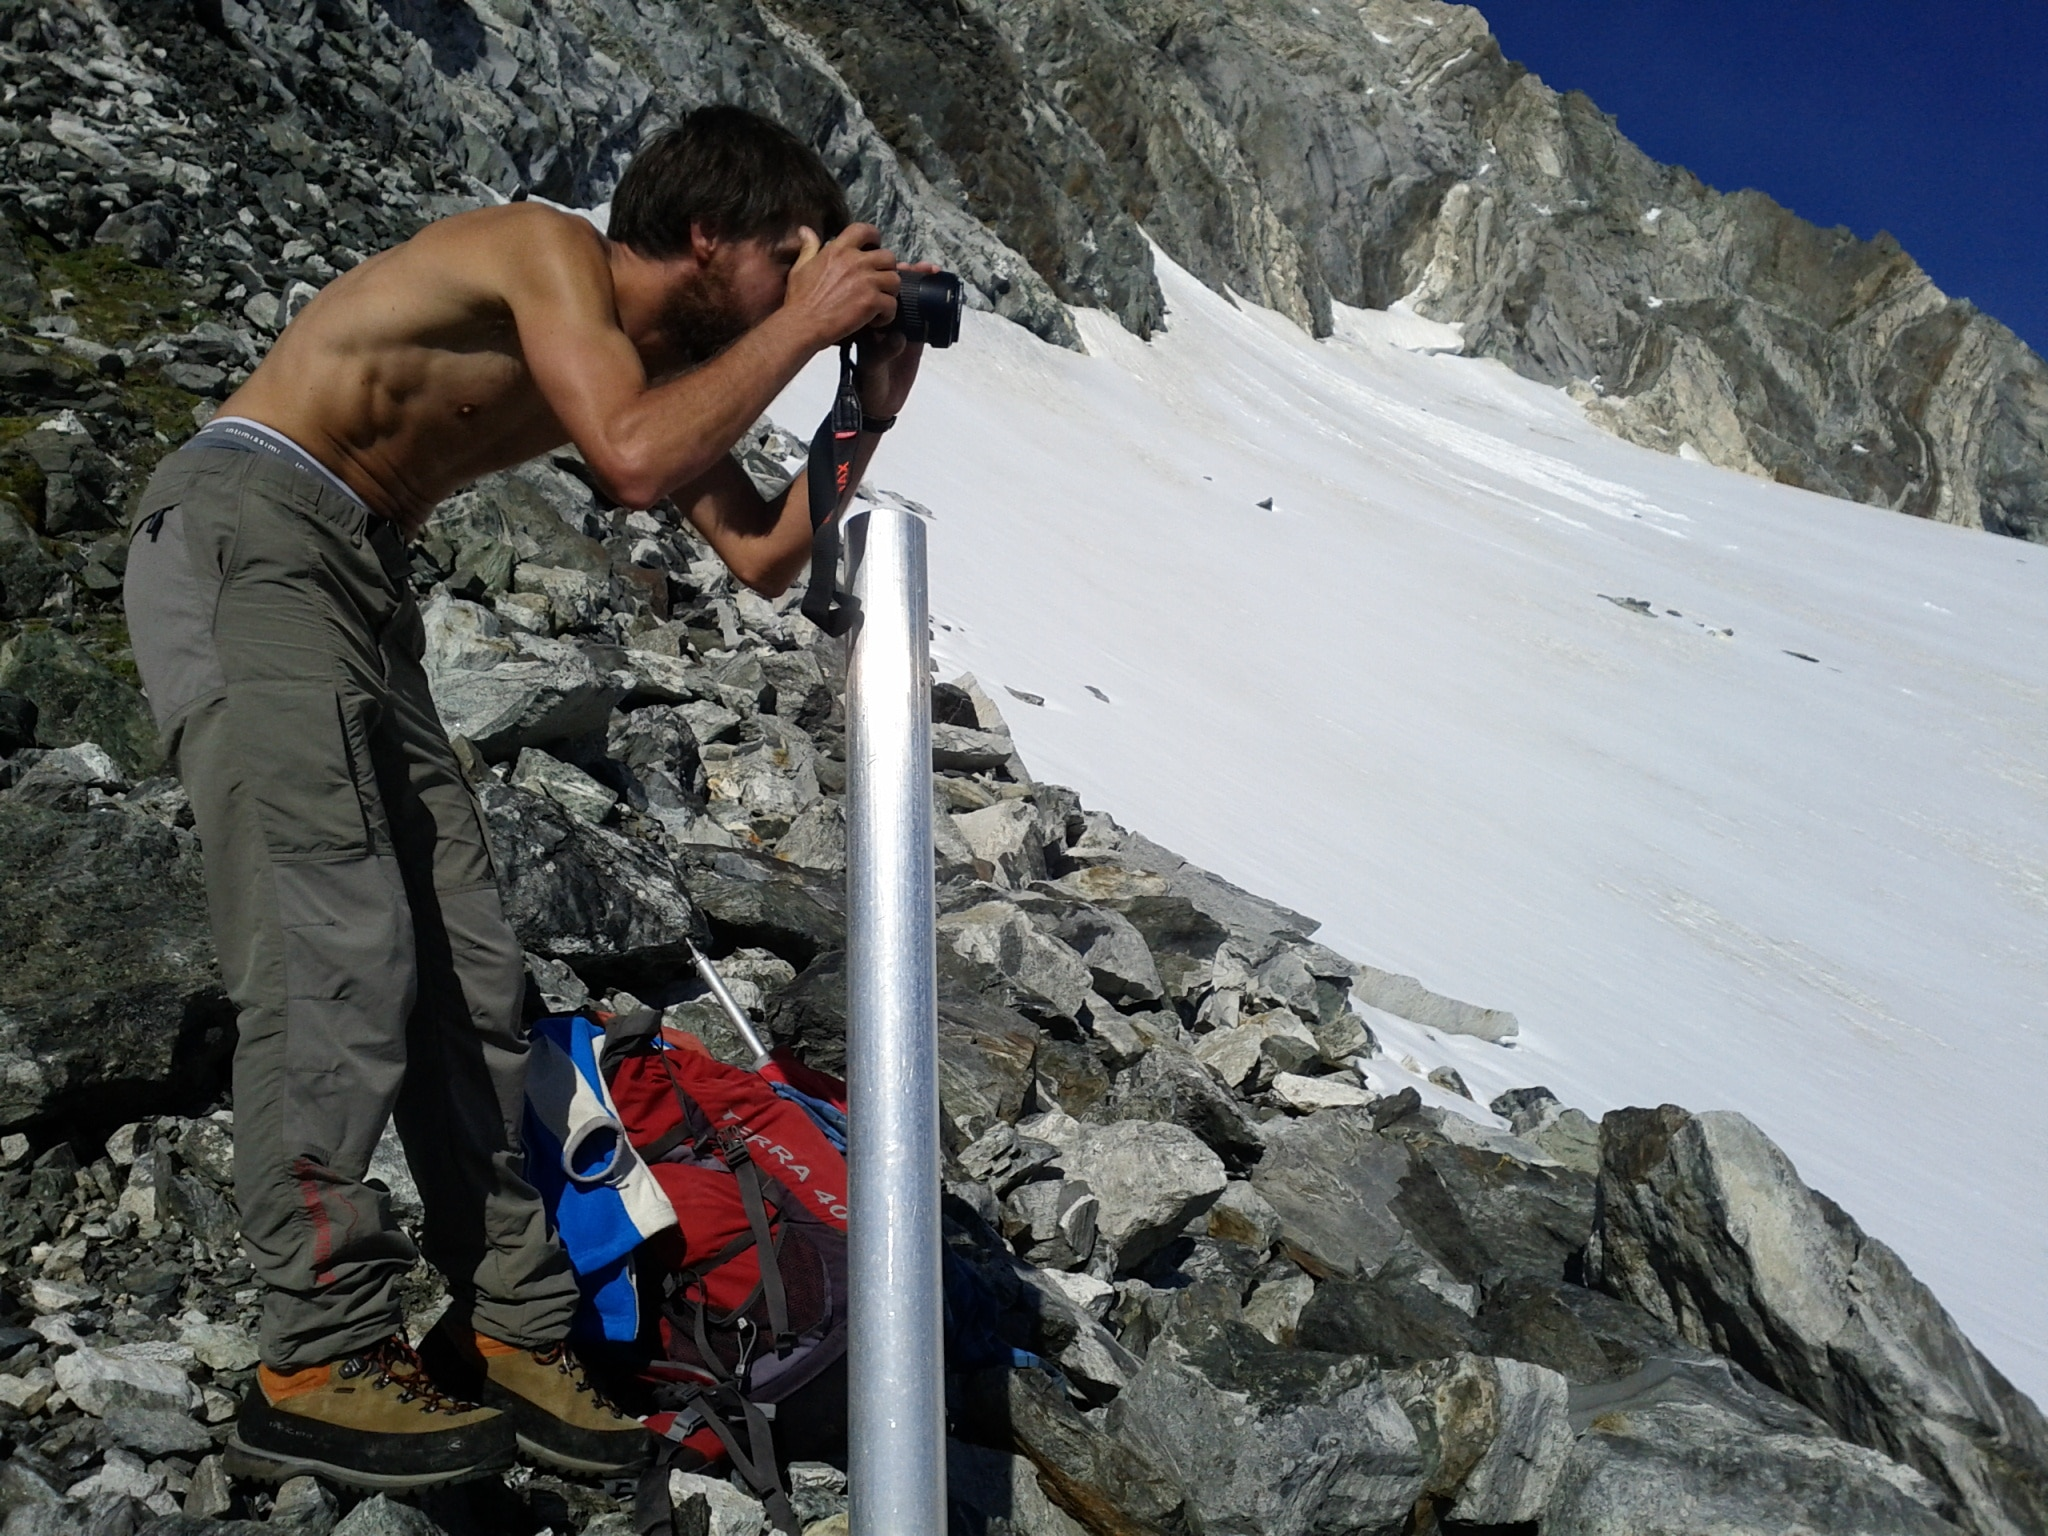 Beno photograph​ing the Vazzeda Glacier from the measuring post.